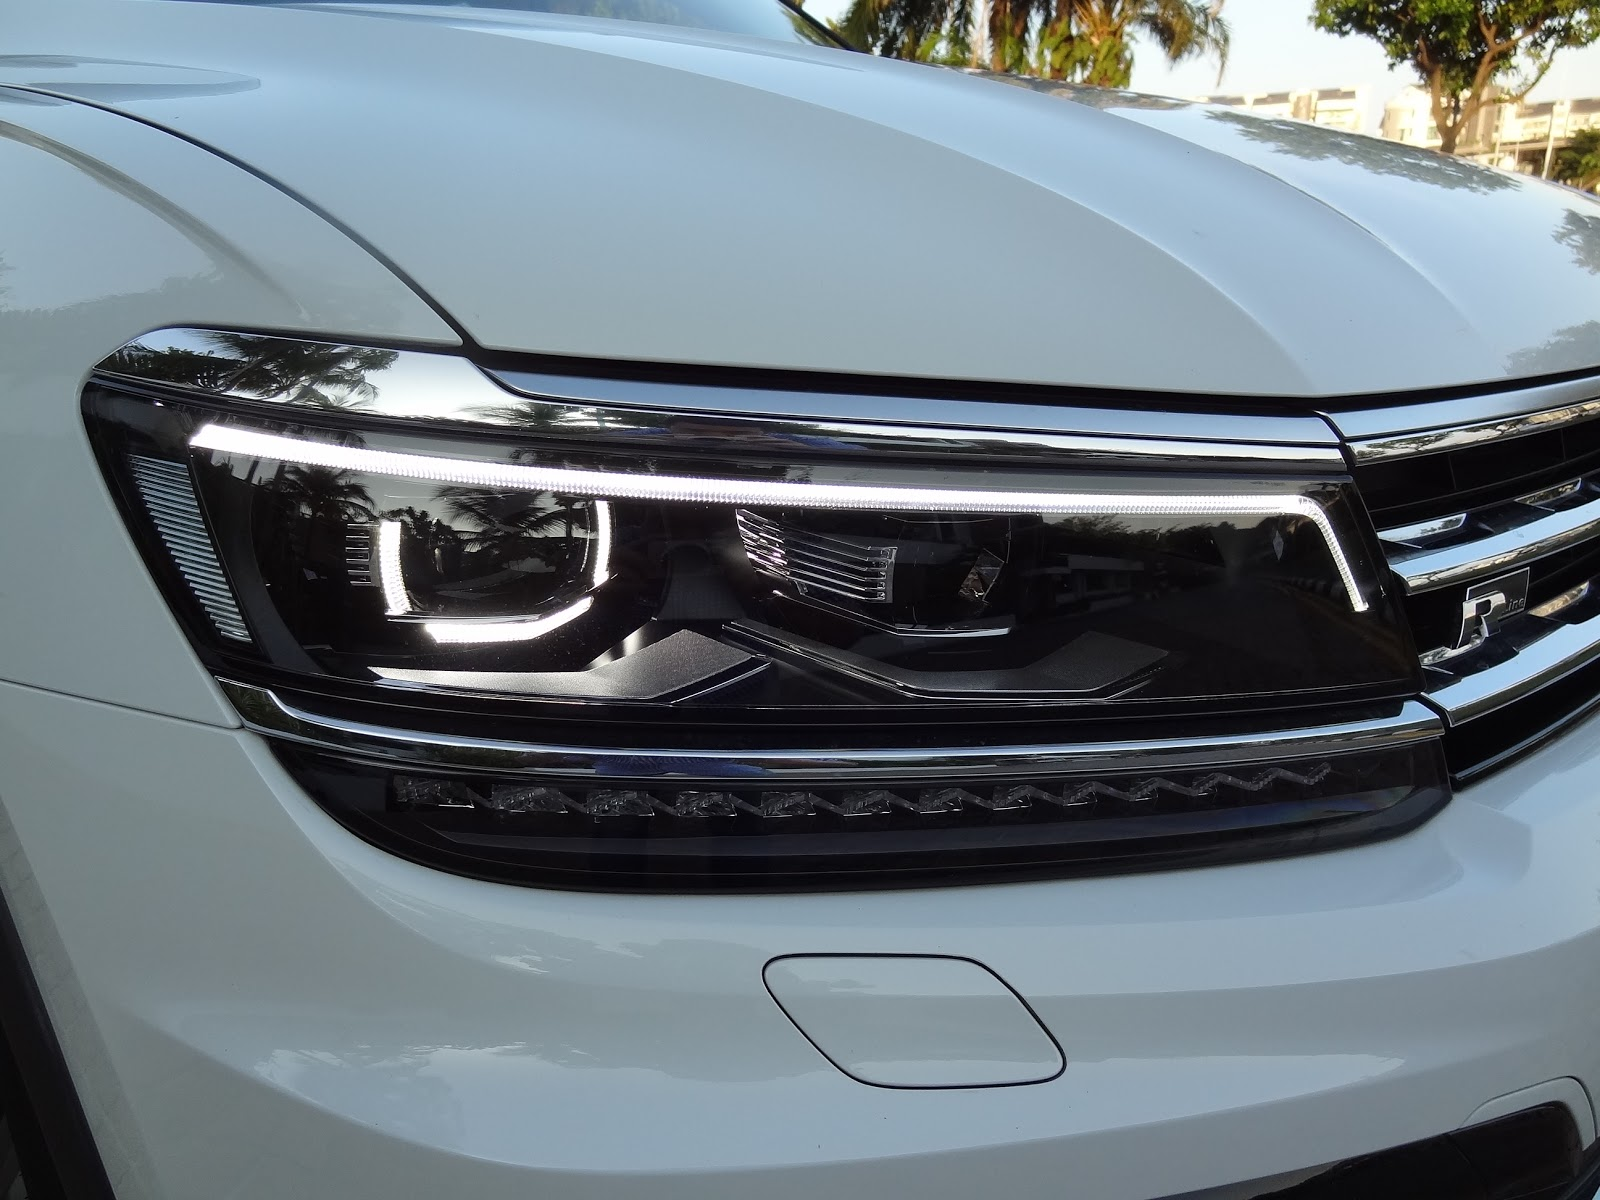 tiguan volkswagen lights. the striking headlights with led technology come as standard on new tiguan. leds stand out in particular their large volume of light, tiguan volkswagen lights